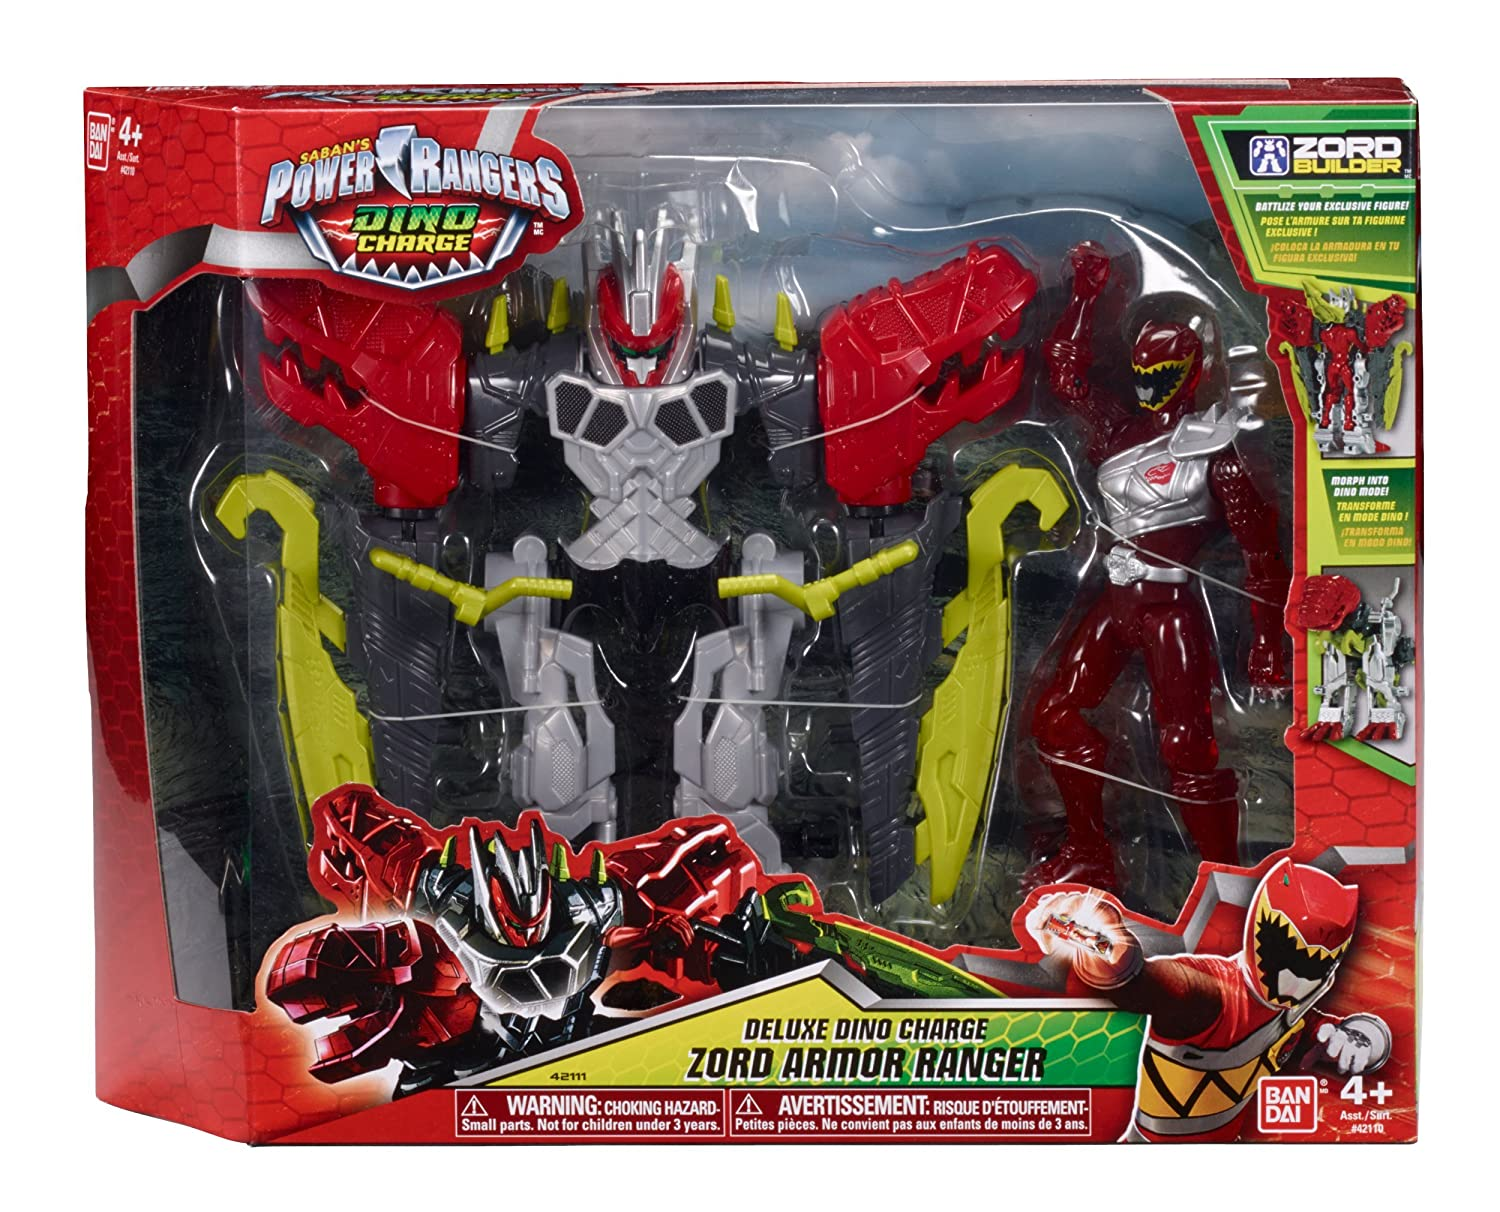 Deluxe Dino Charge Zord Armor Ranger Bandai America Incorporated 42111 Power Rangers Dino Charge